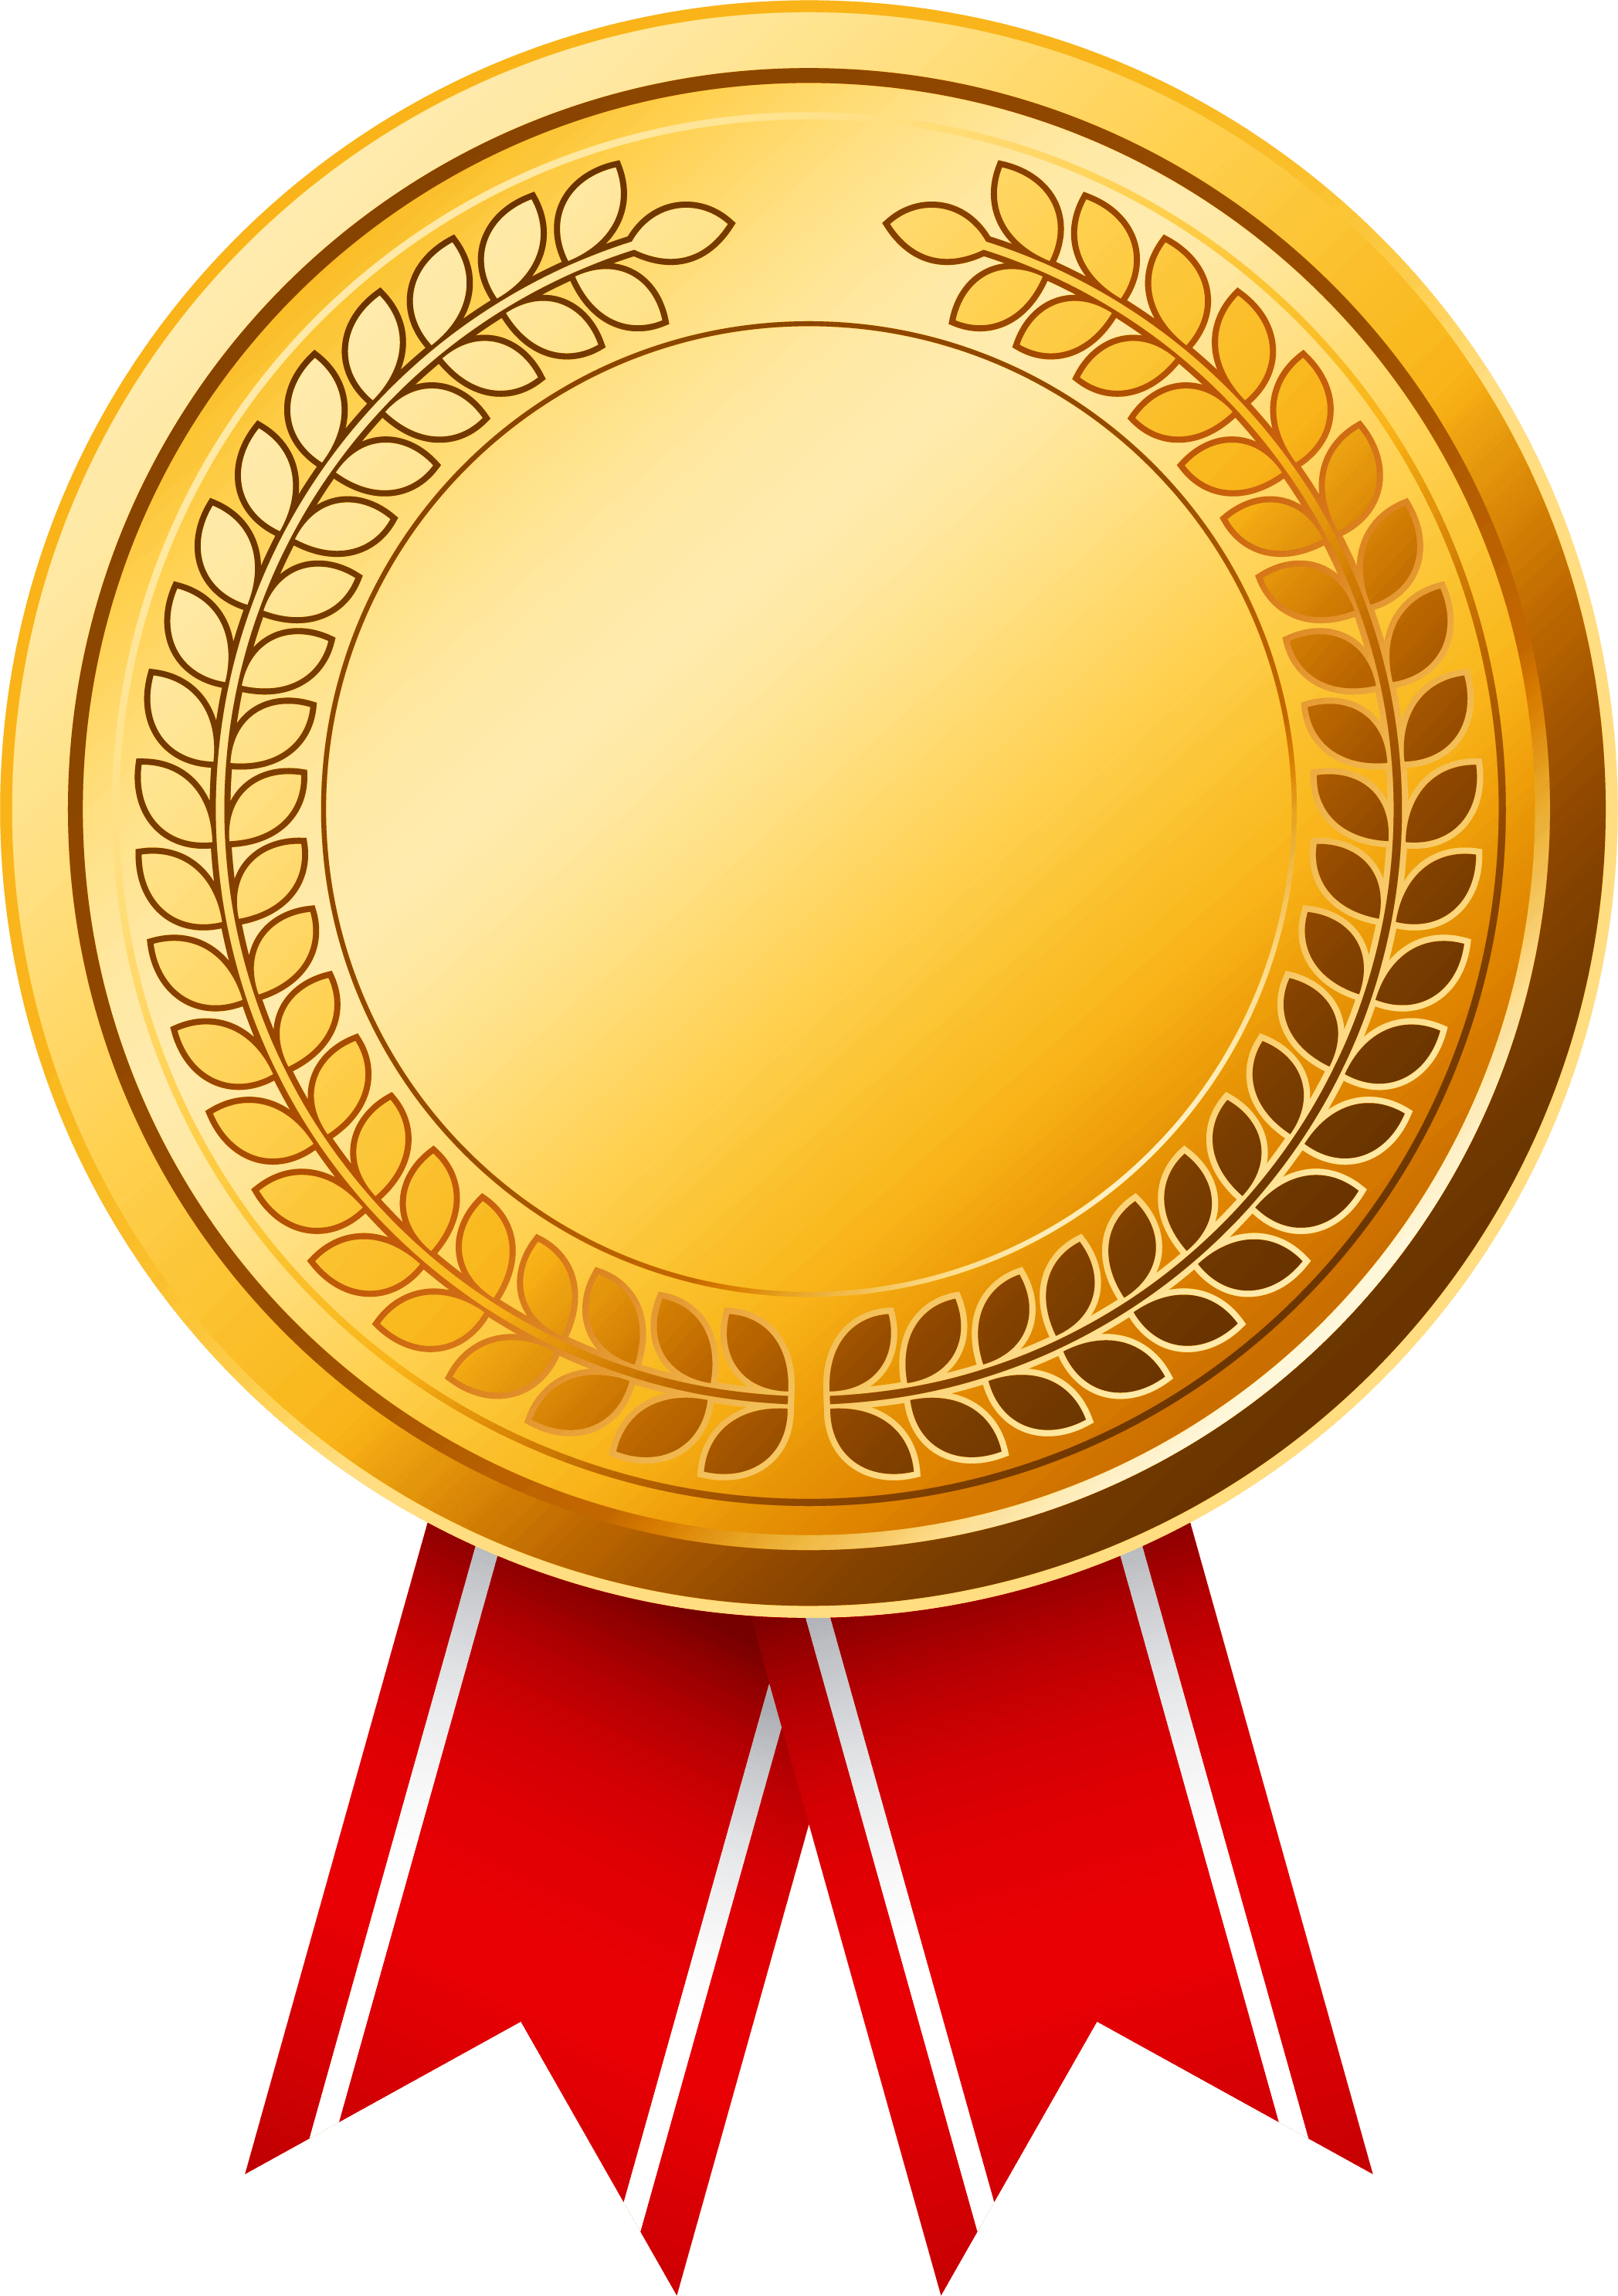 Medal PNG, Gold Medal, Olympic Medals, Medal Ribbon Clipart.